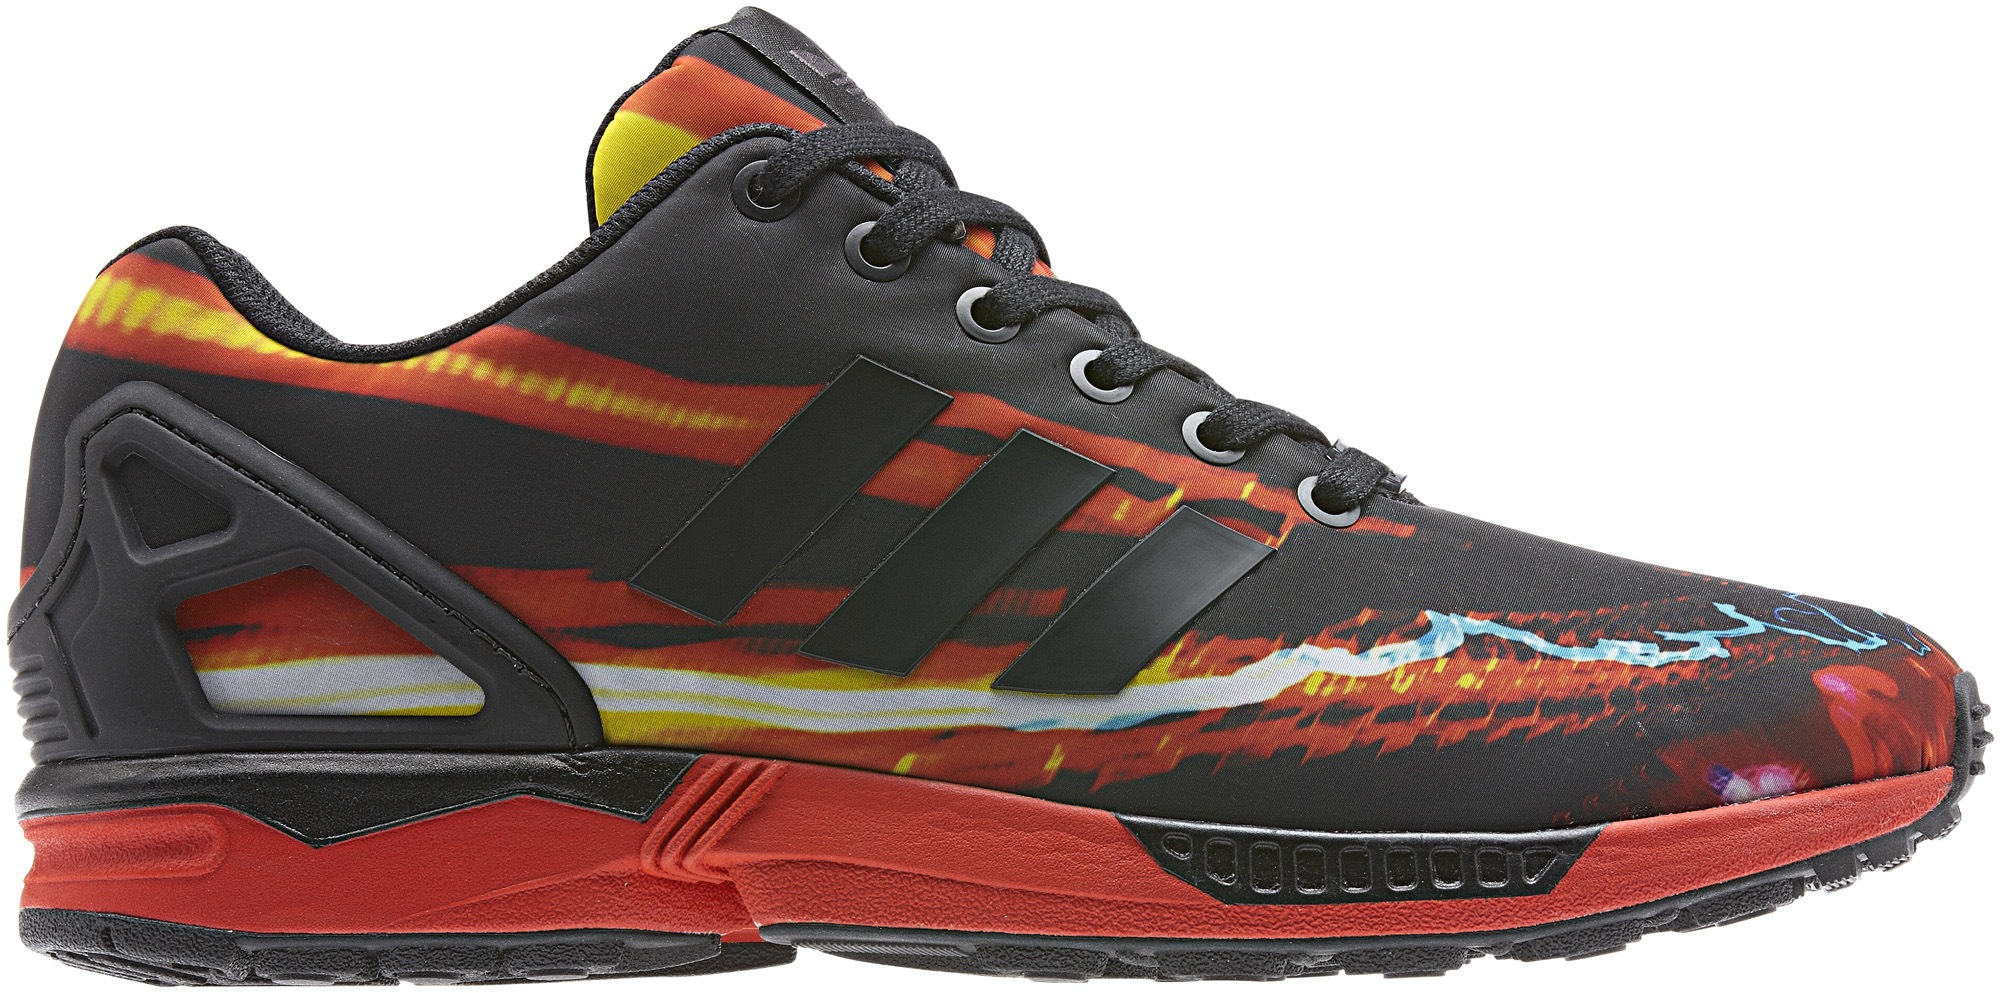 adidas zx flux winter print pack releaseinfos dead. Black Bedroom Furniture Sets. Home Design Ideas